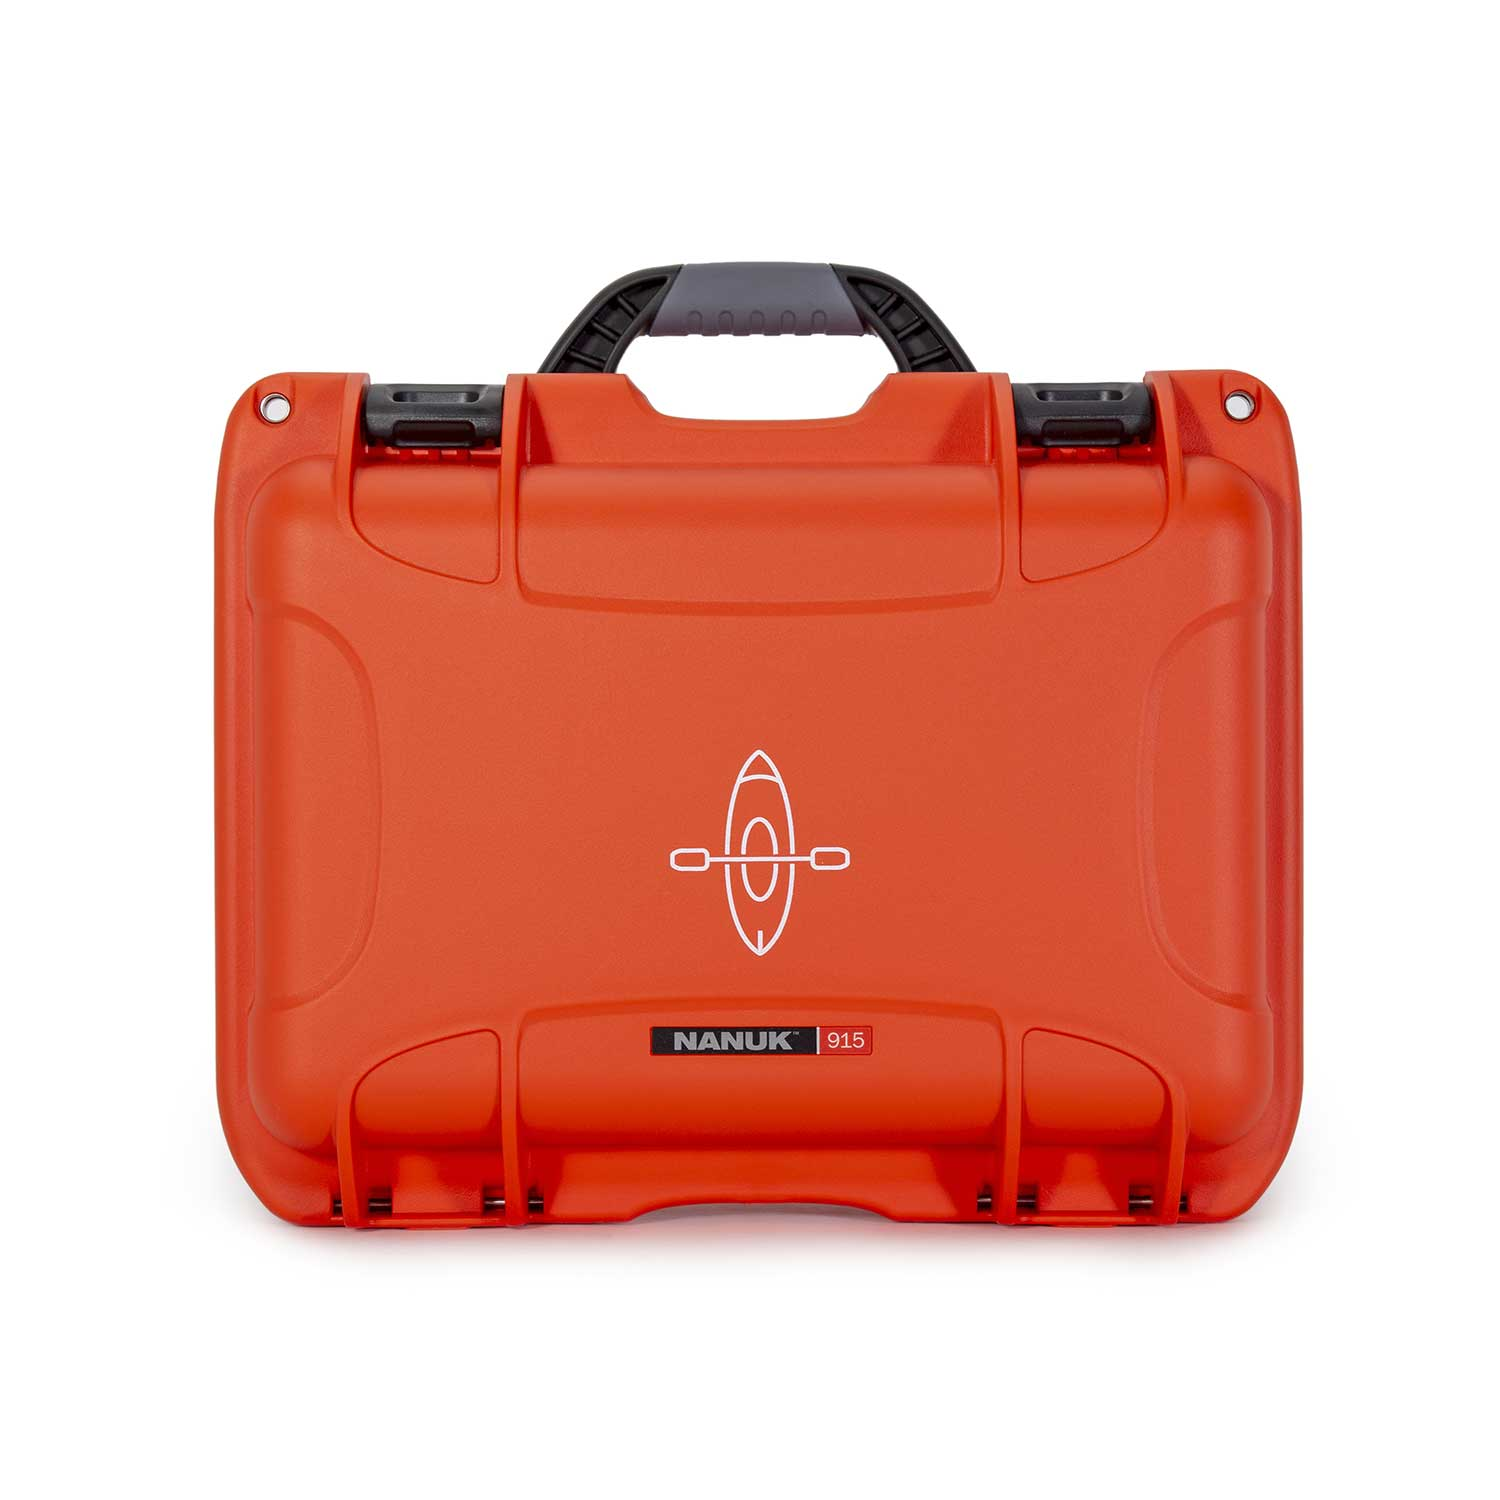 NANUK 915 Hard Case Specification Front